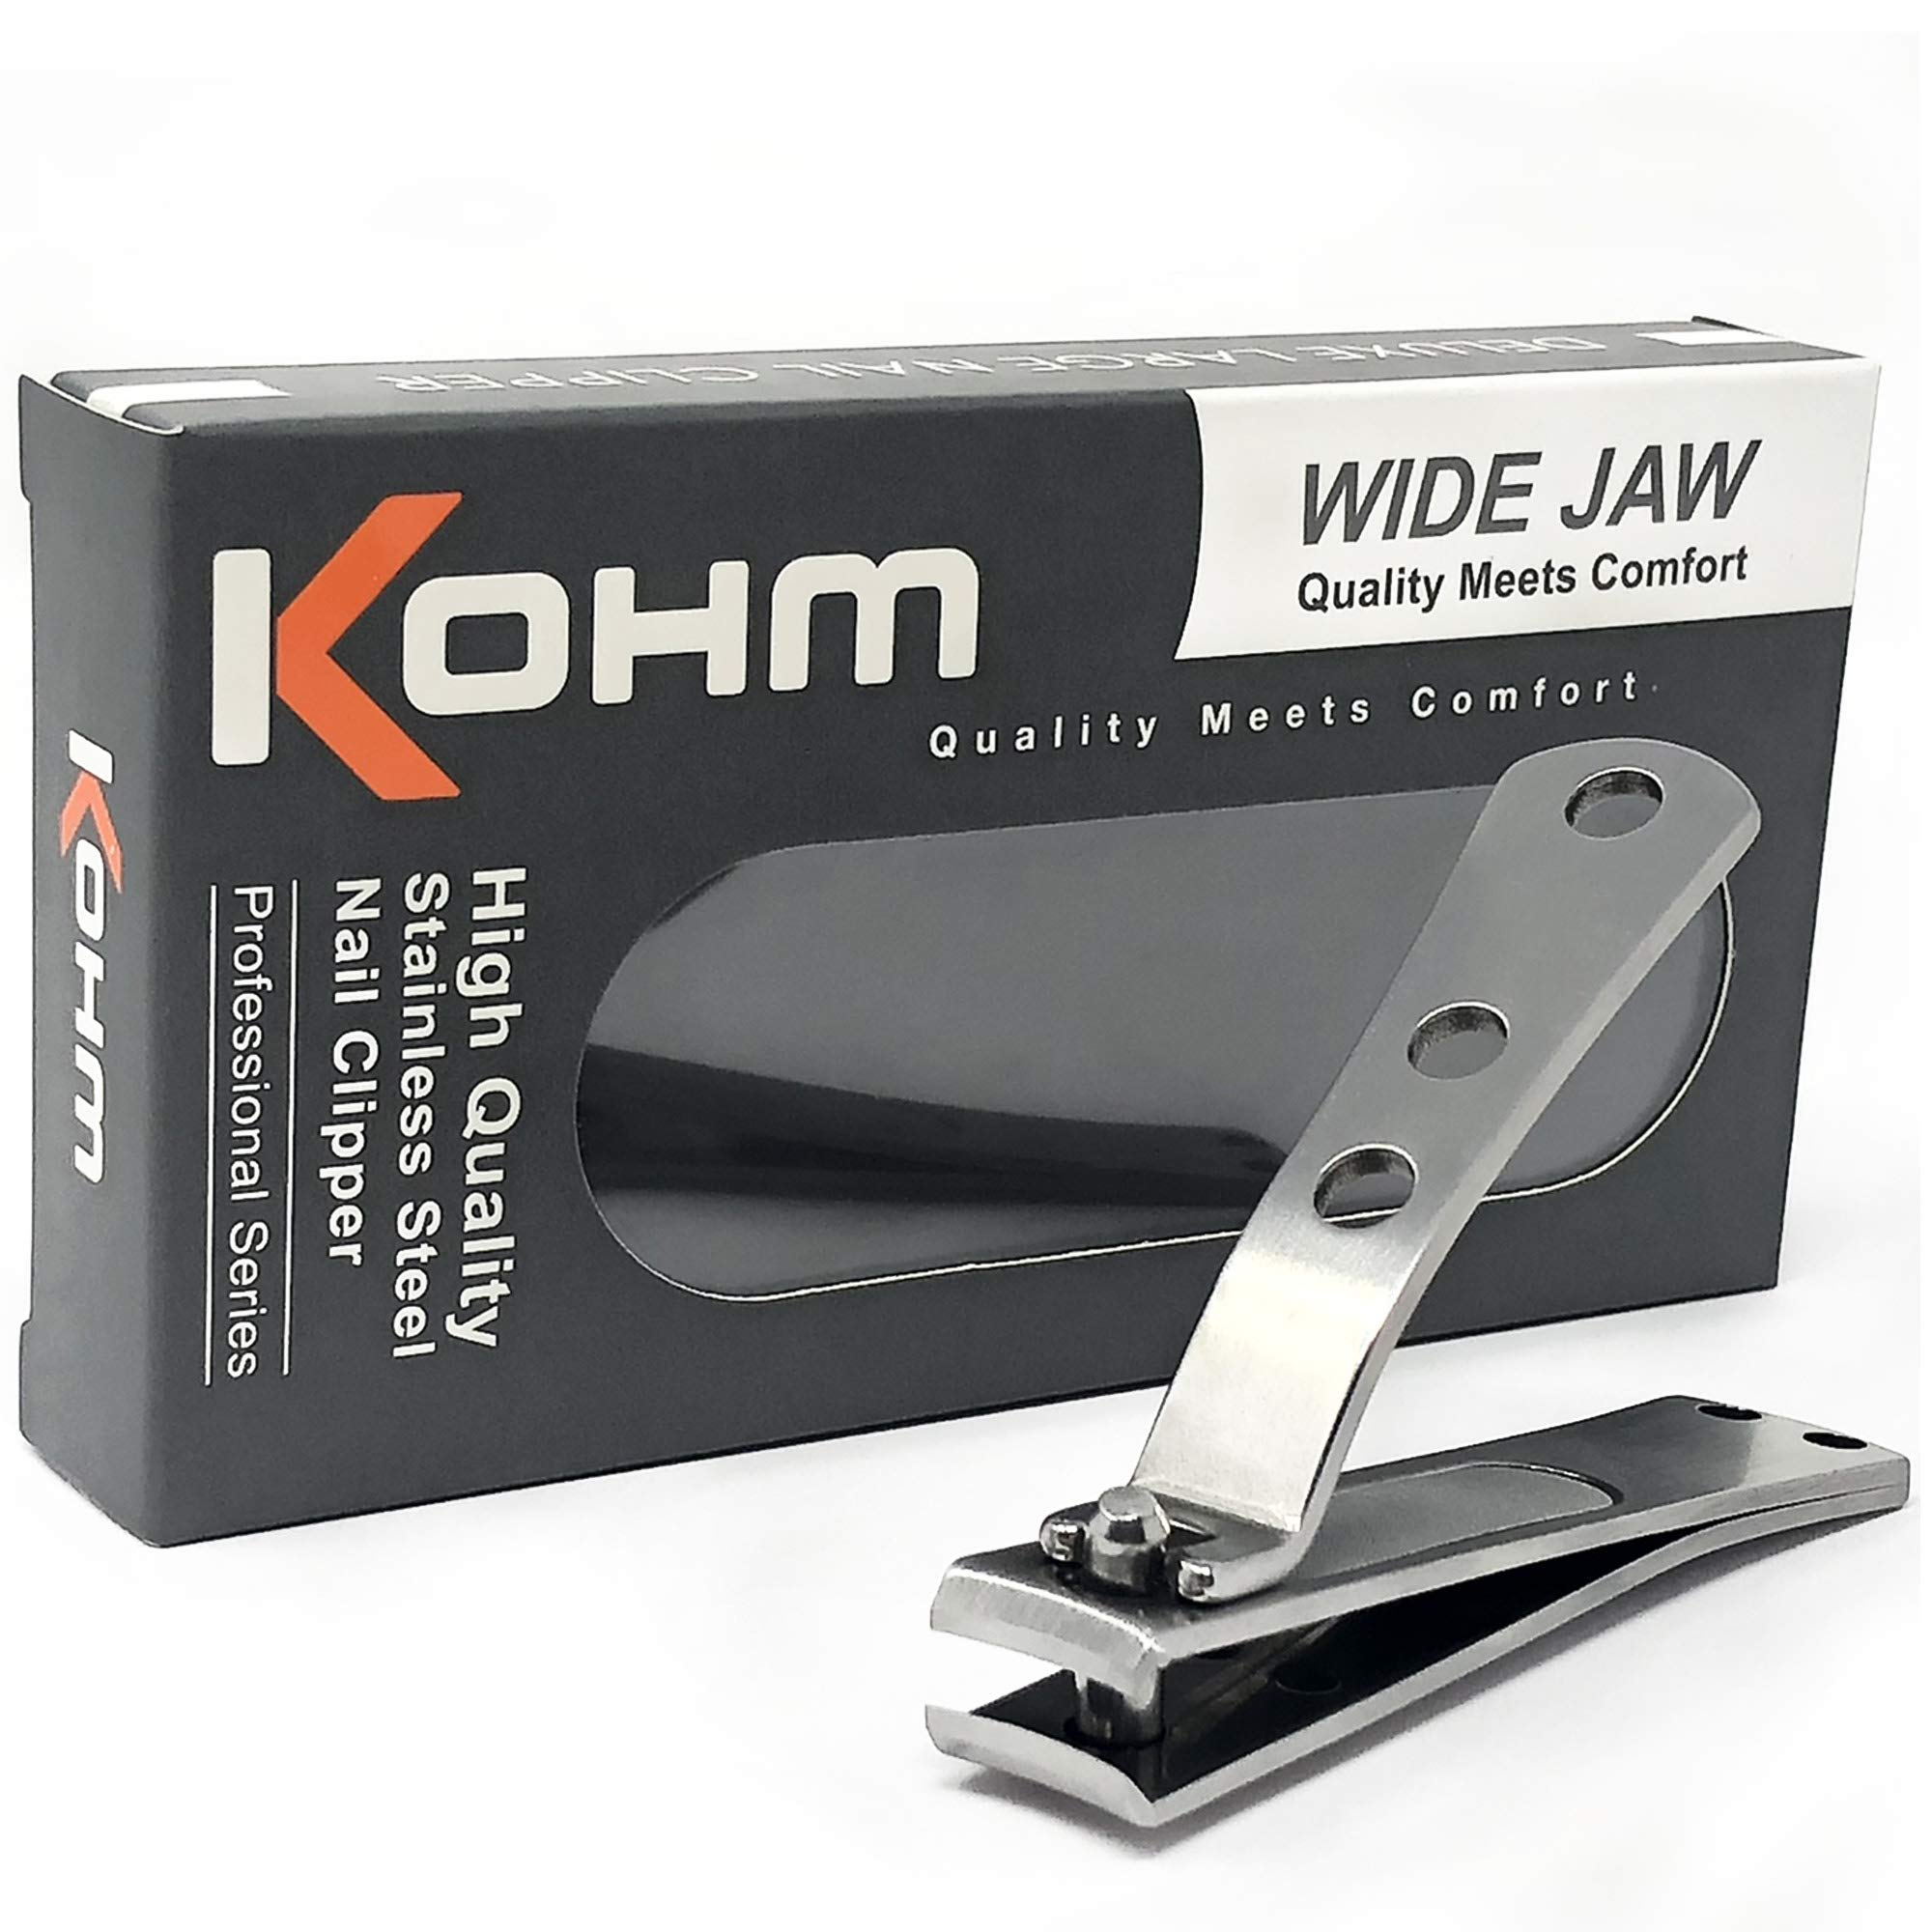 Kohm CP-140L Nail Clippers for Thick Nails, Wide Jaw, Curved Blade - Sharp, Heavy Duty, Large Stainless Steel Toenail Clippers for Thick Toenails for Men, Seniors, Adults with Built-In Nail File by Kohm